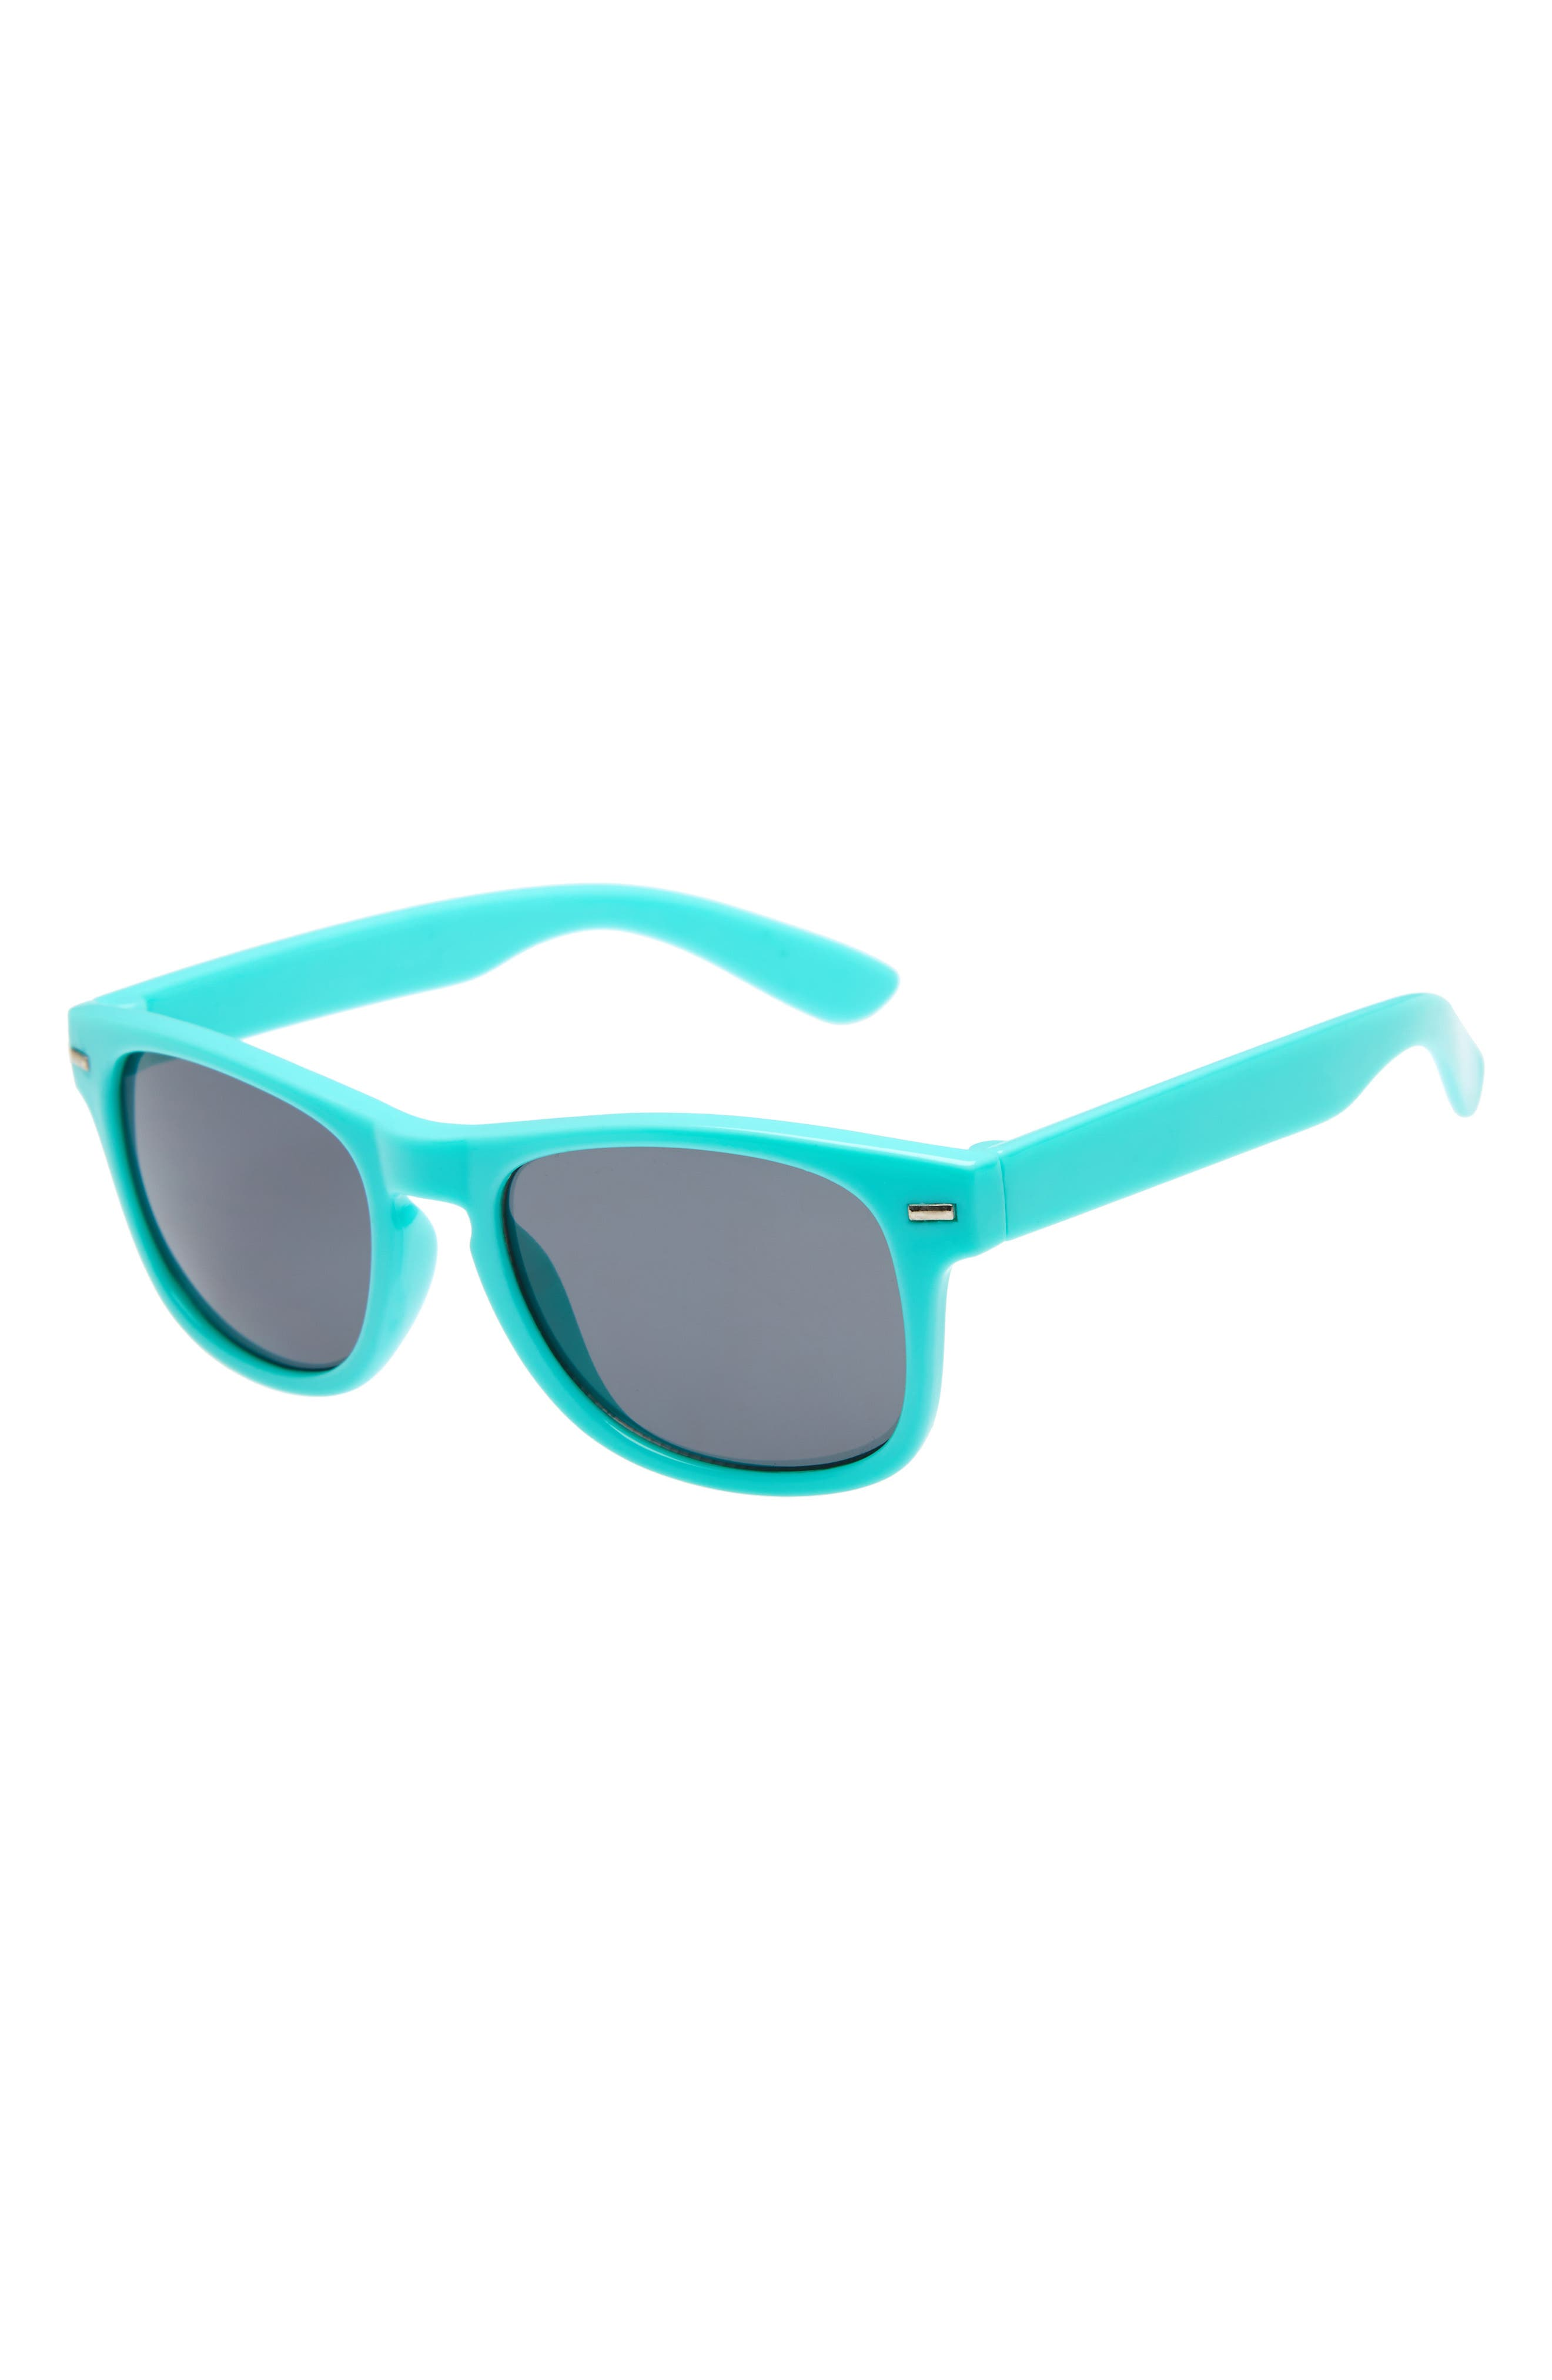 Mirrored Sunglasses,                             Main thumbnail 1, color,                             Blue Combo